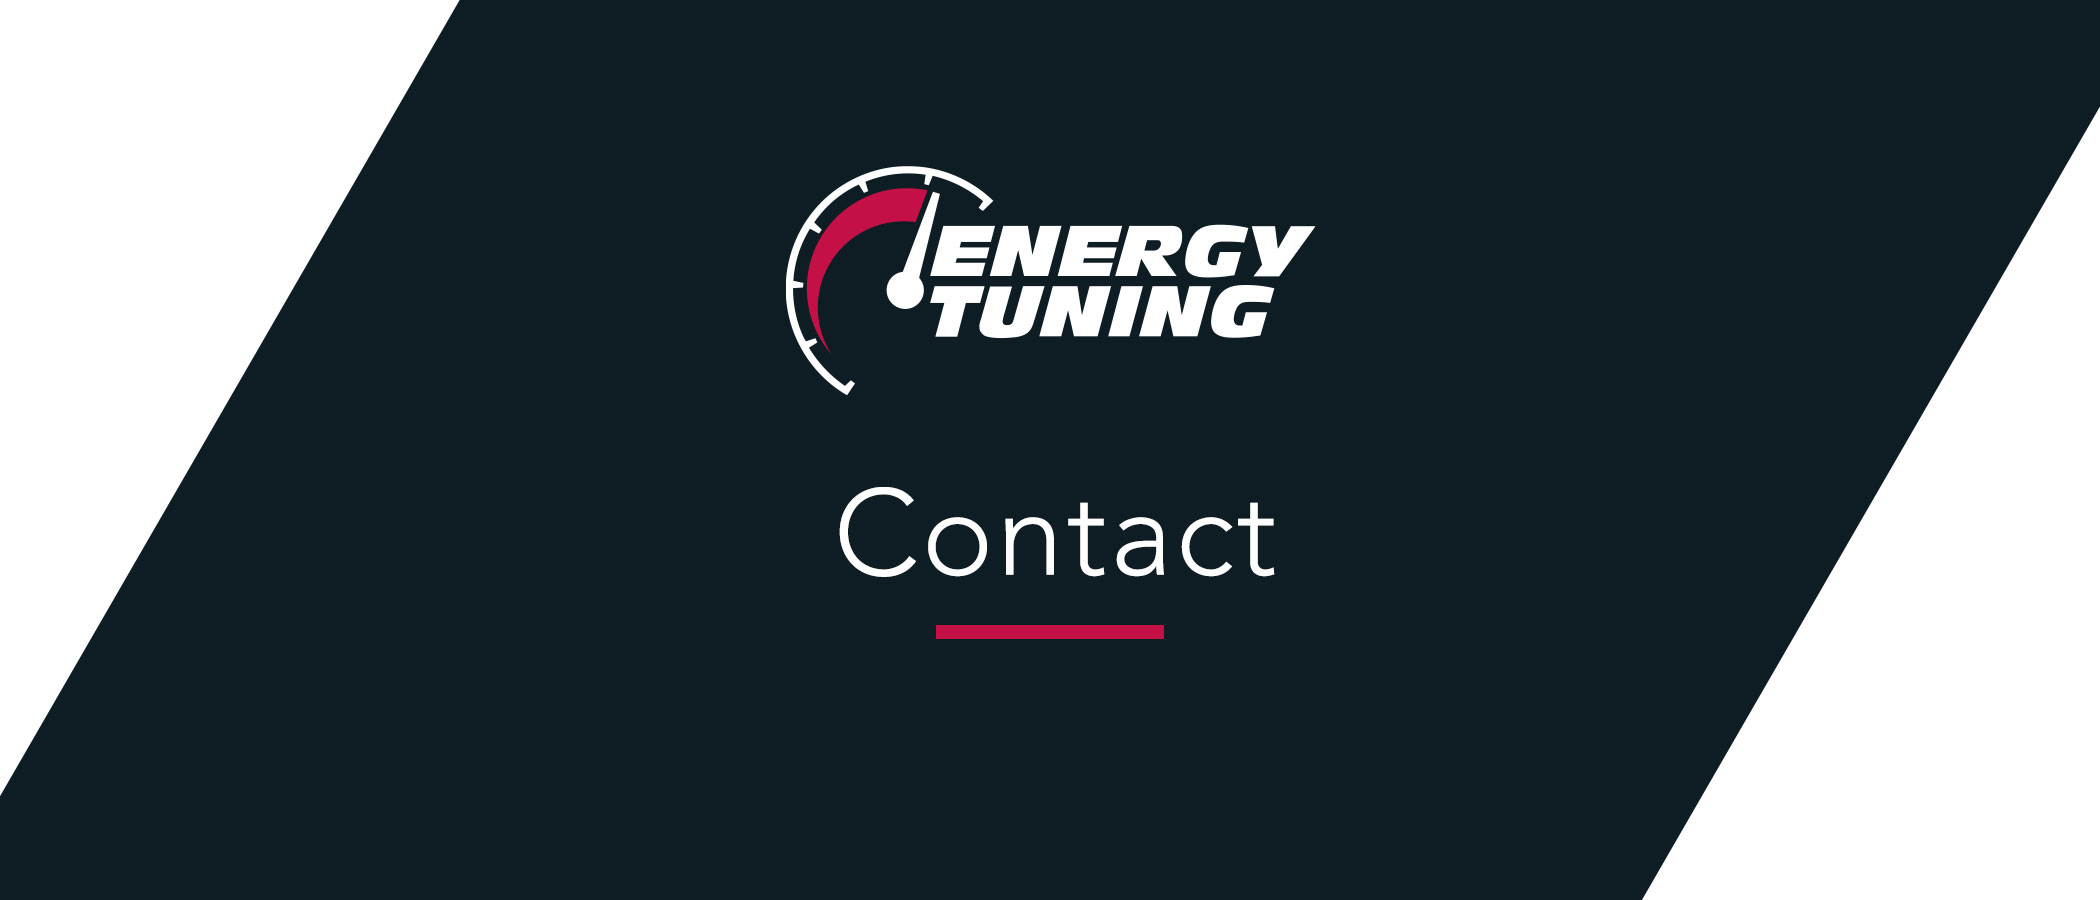 Contact Energy Tuning